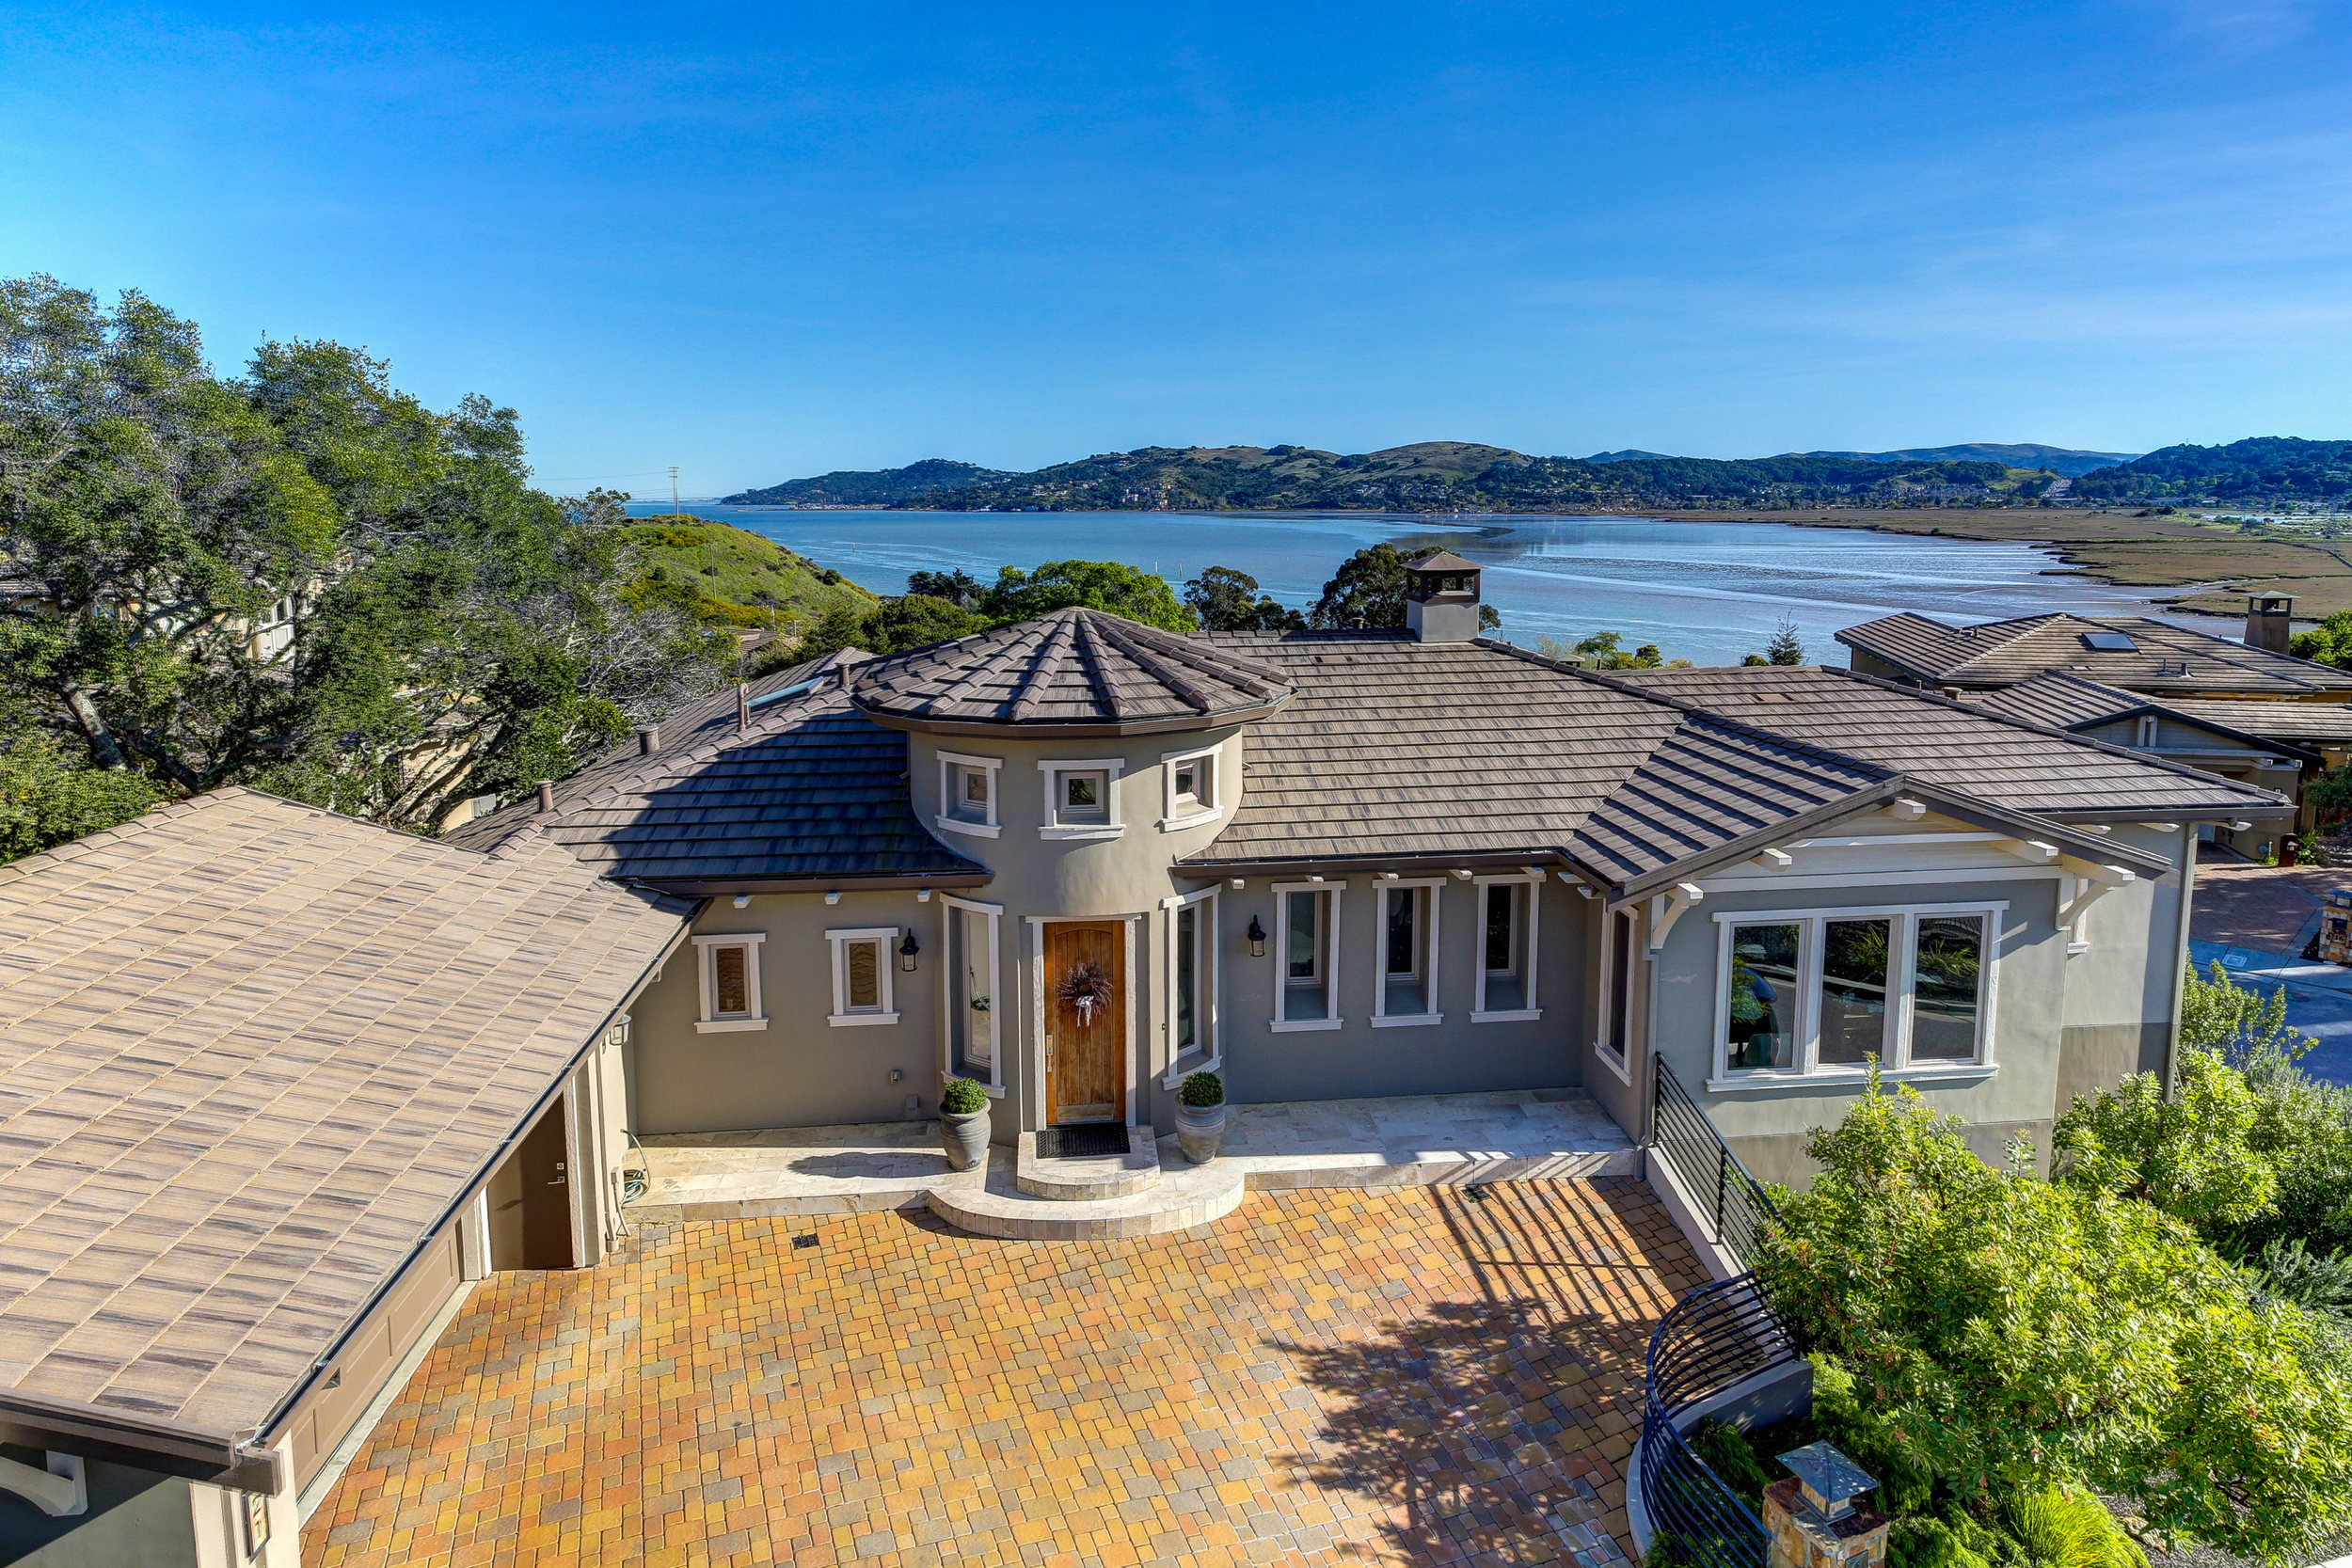 21 Drakes Cove Larkspur Best Realtor 04 MLS - Own Marin Pacific Union - Best Realtor in Marin County.jpg